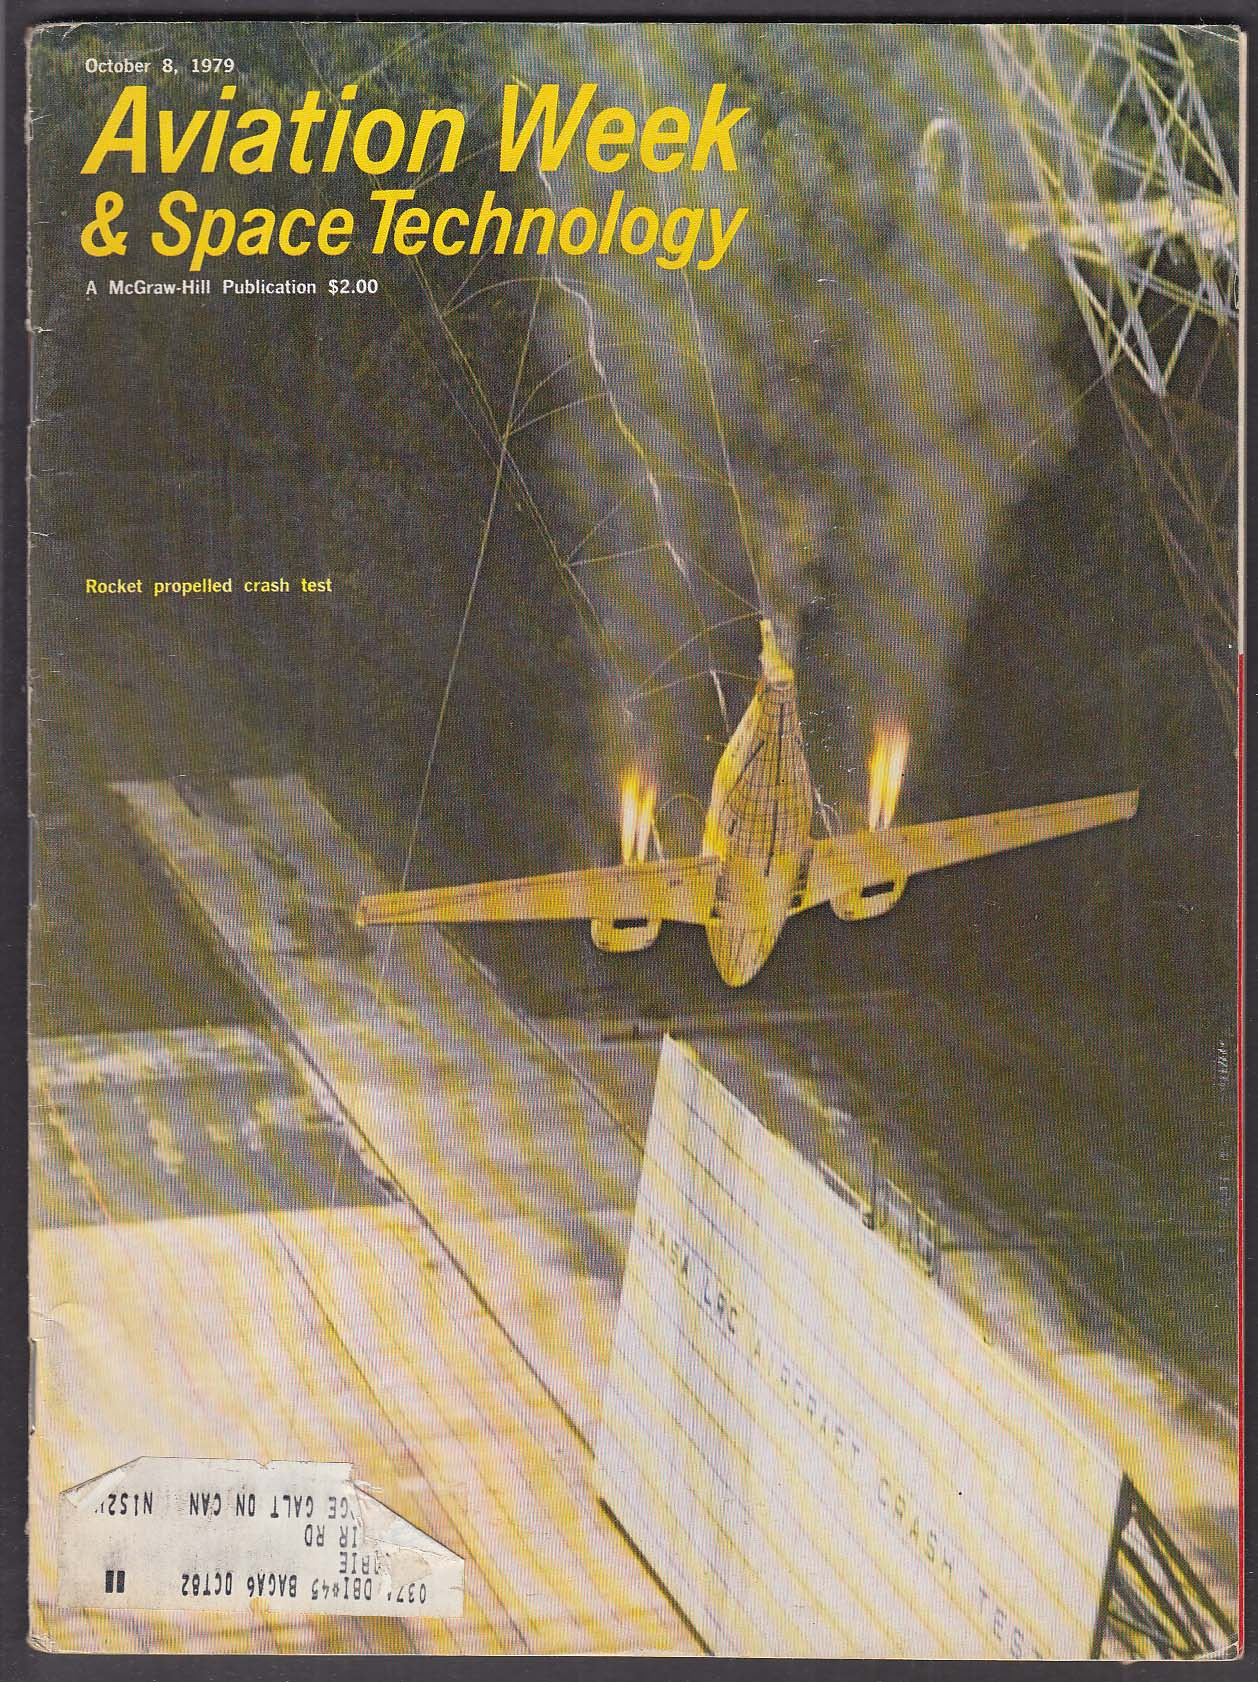 AVIATION WEEK & Space Technology DC-10 NASA Lufthansa + 10/8 1979